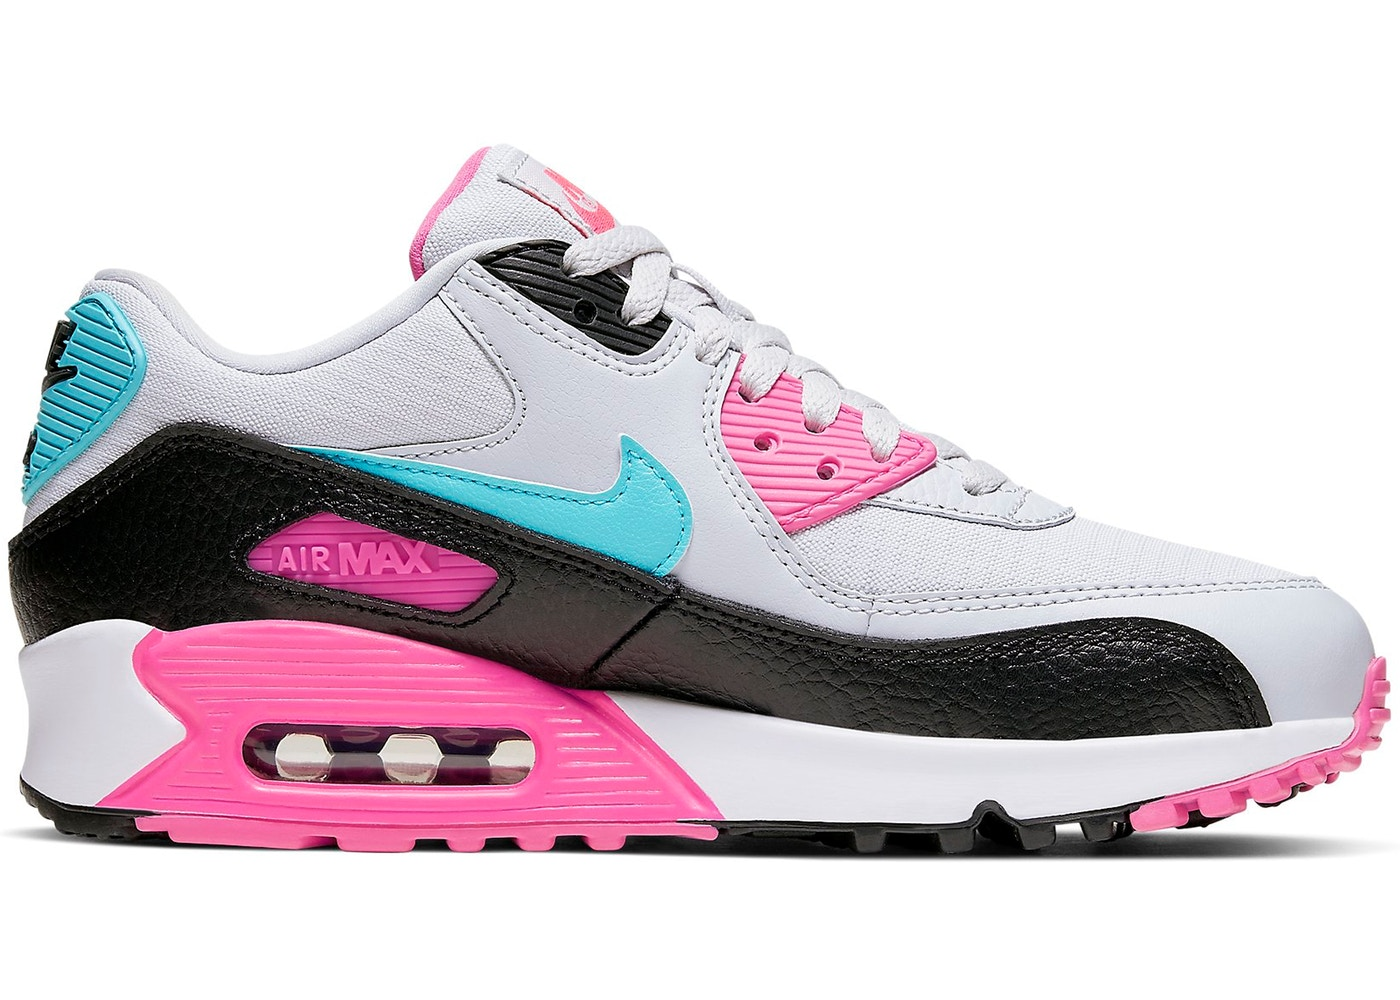 Nike Air Max 90 Shoes Most Popular